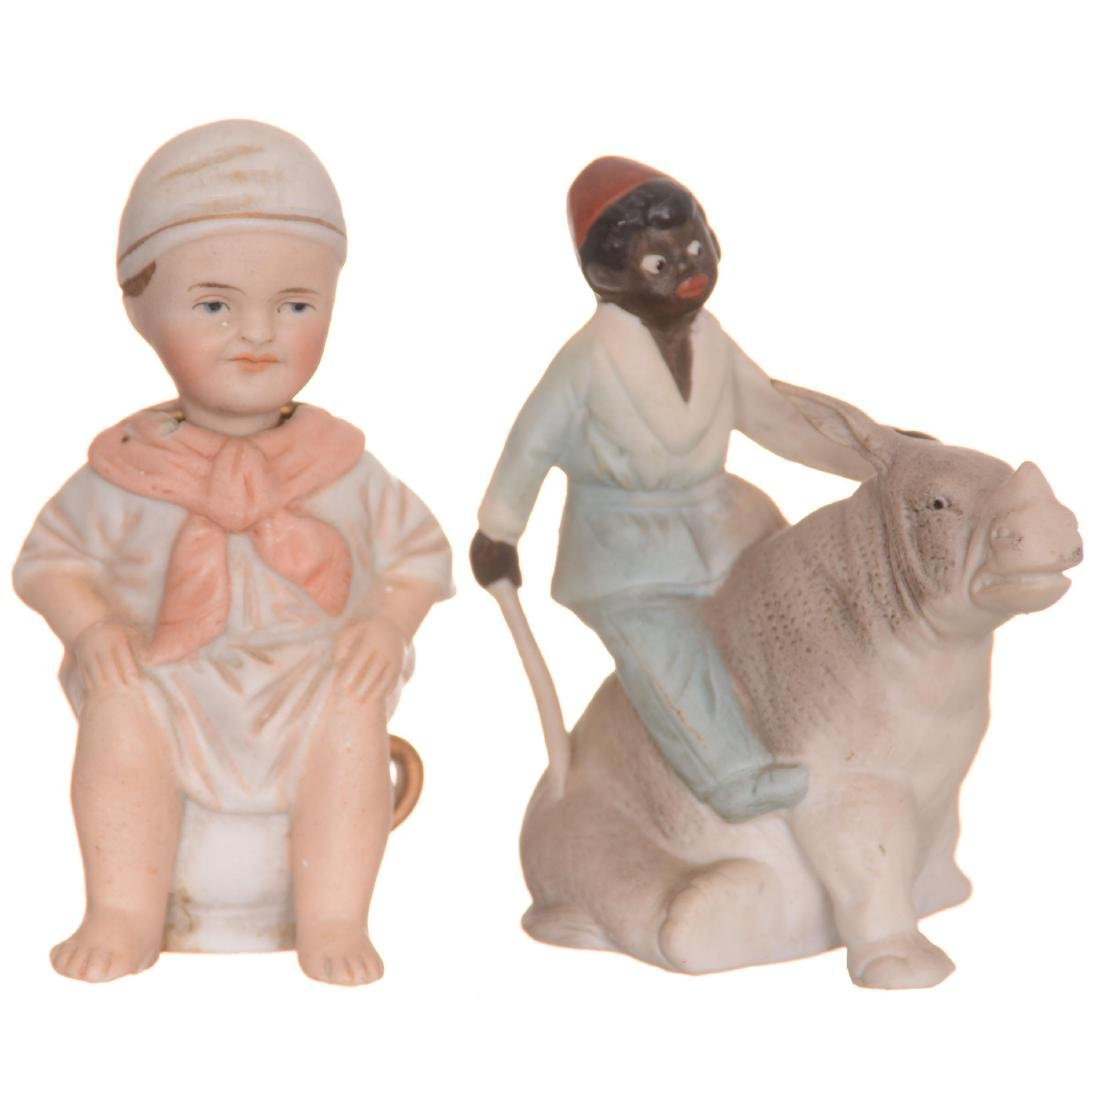 (2) Bisque Figurines